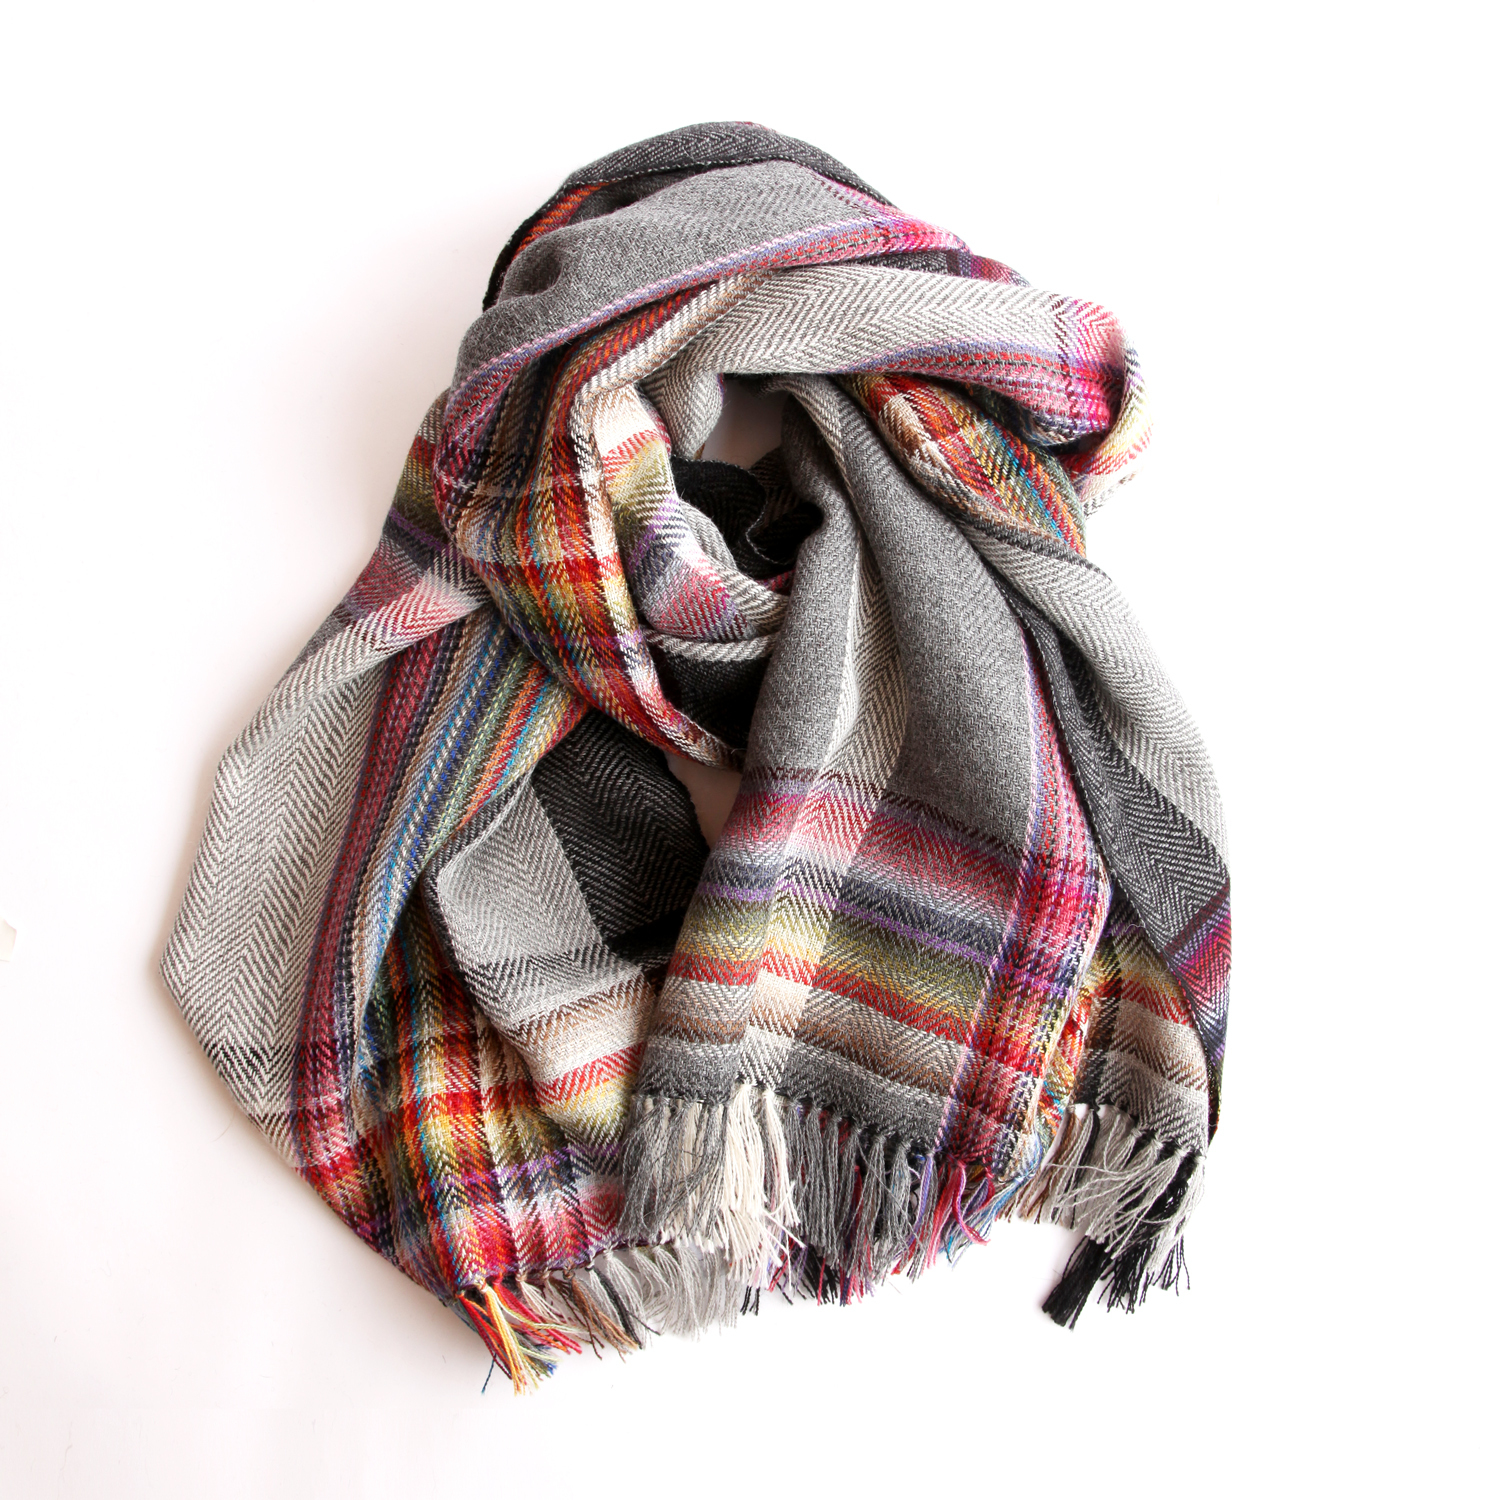 THE INOUE BROTHERS/Multi Coloured Scarf/Grey